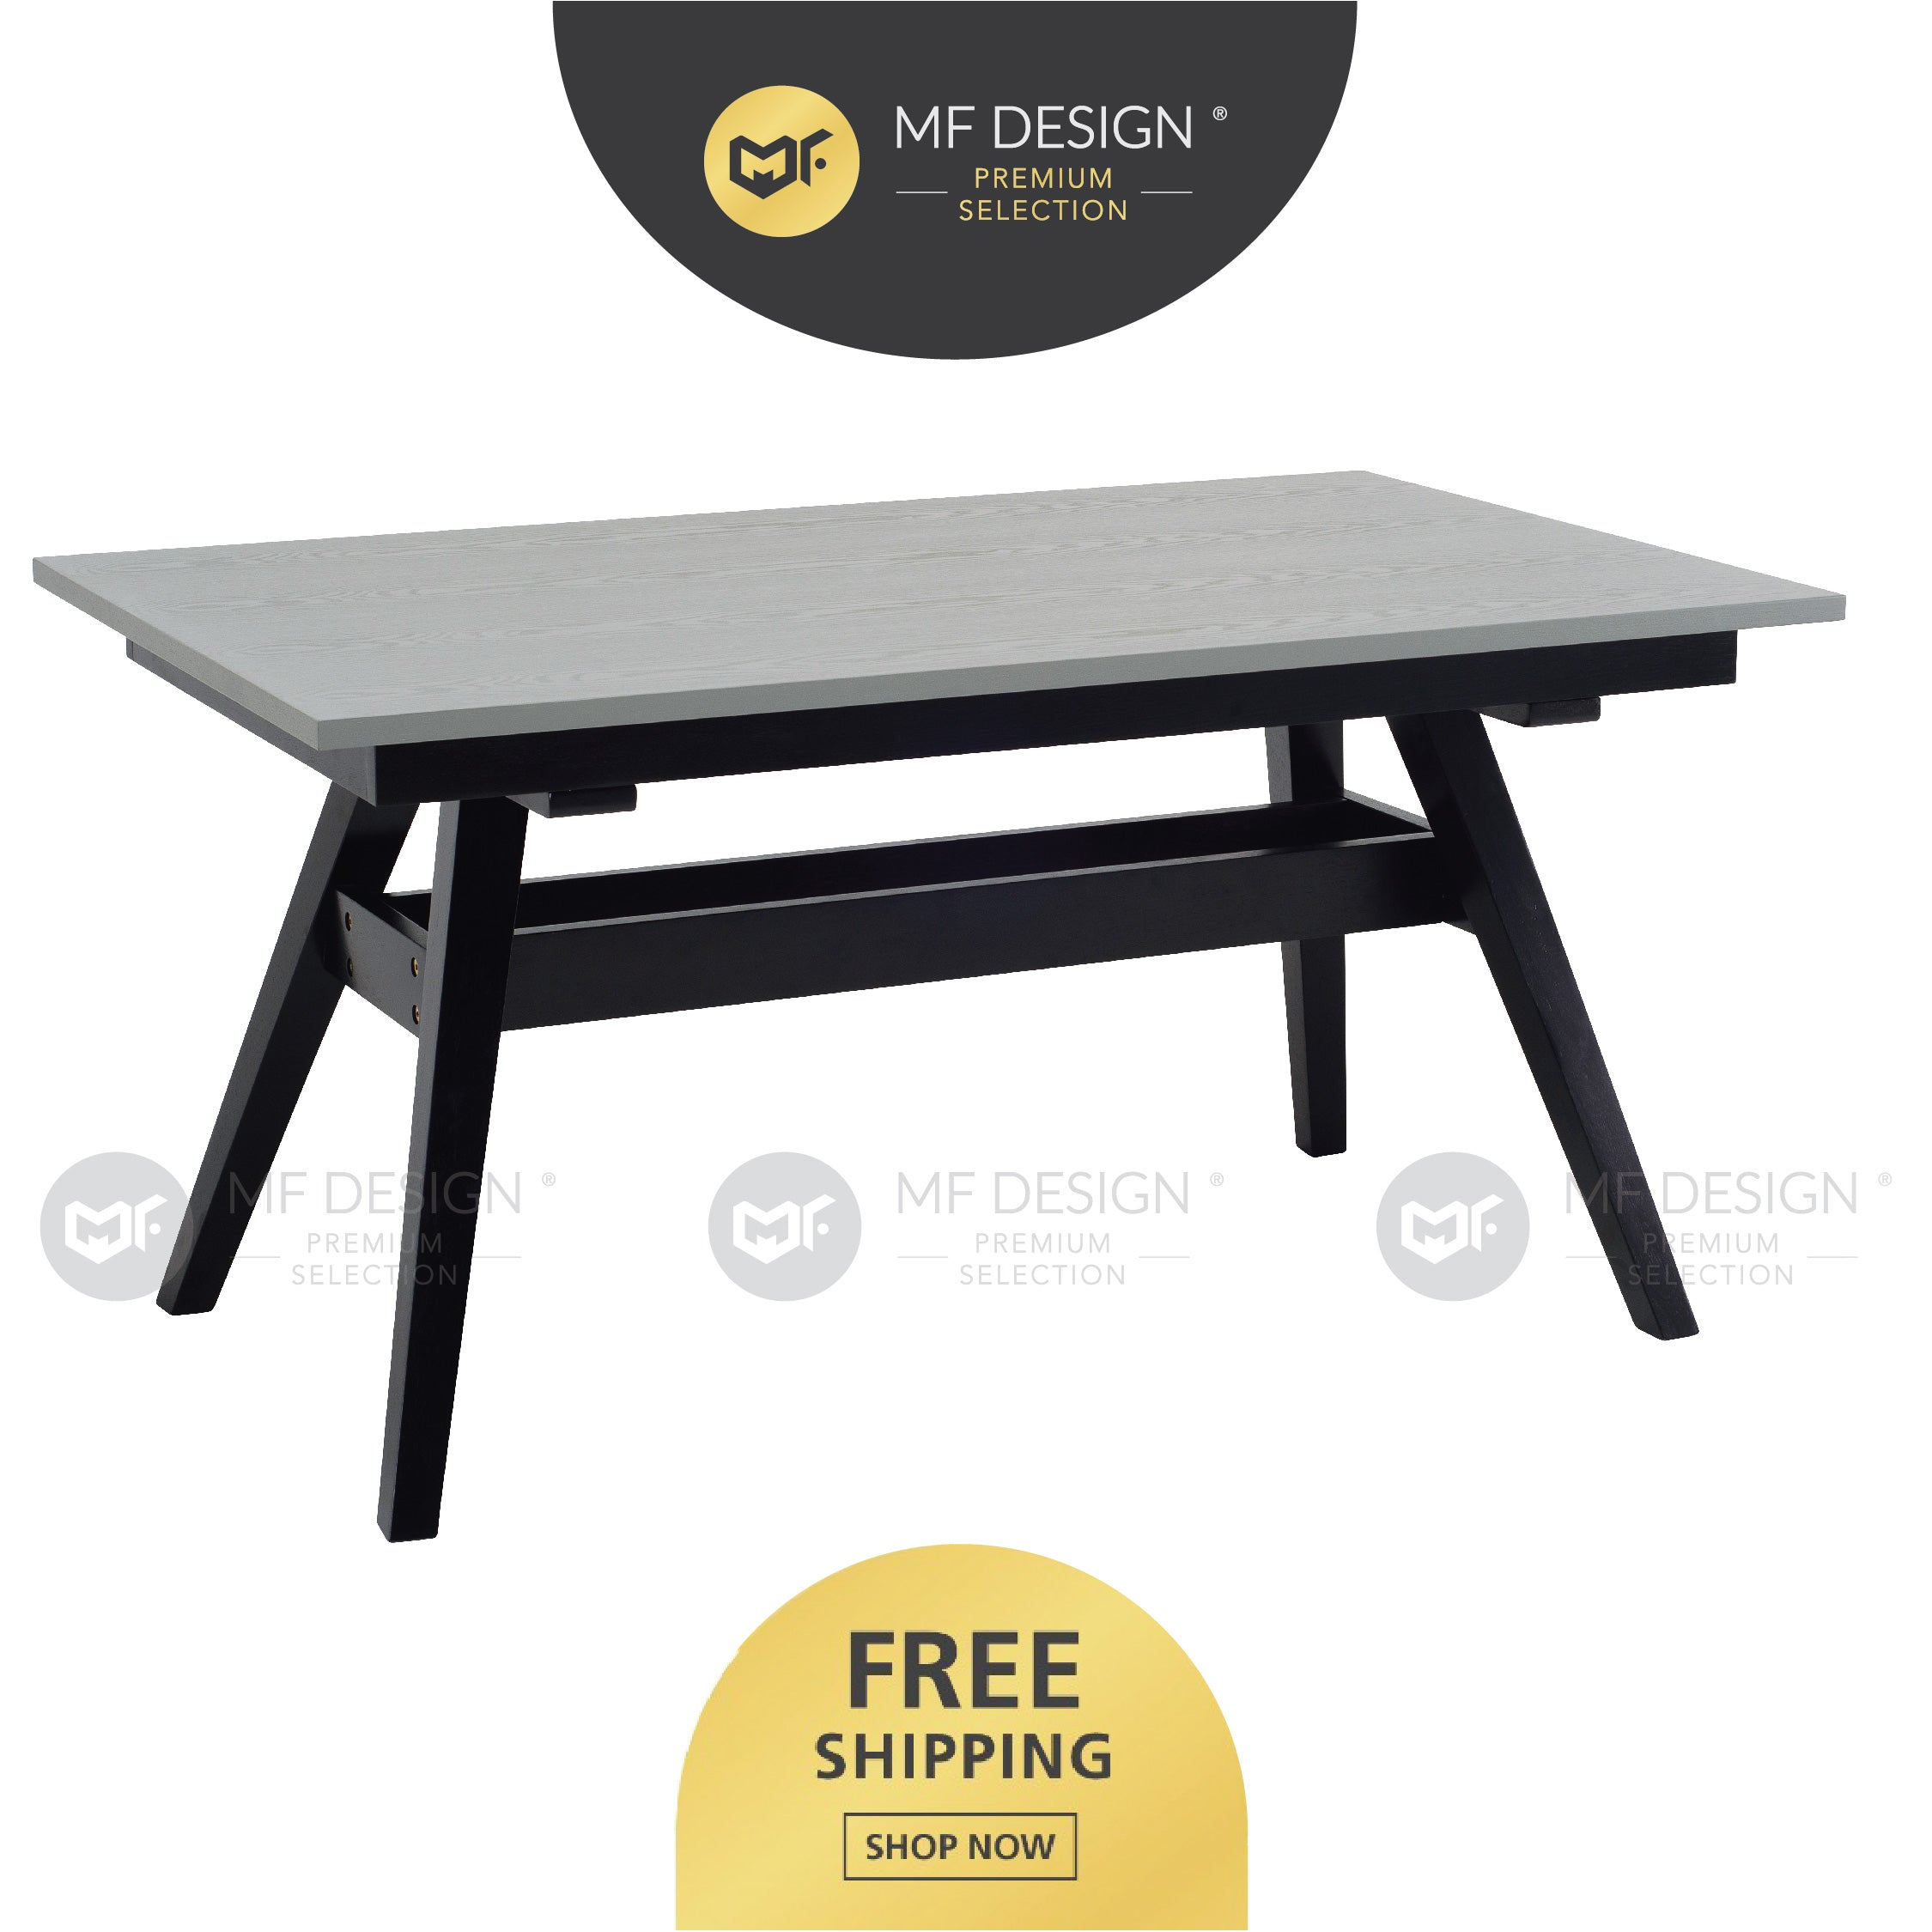 MFD Premium Victor Dining Table / Meja Makan / Table